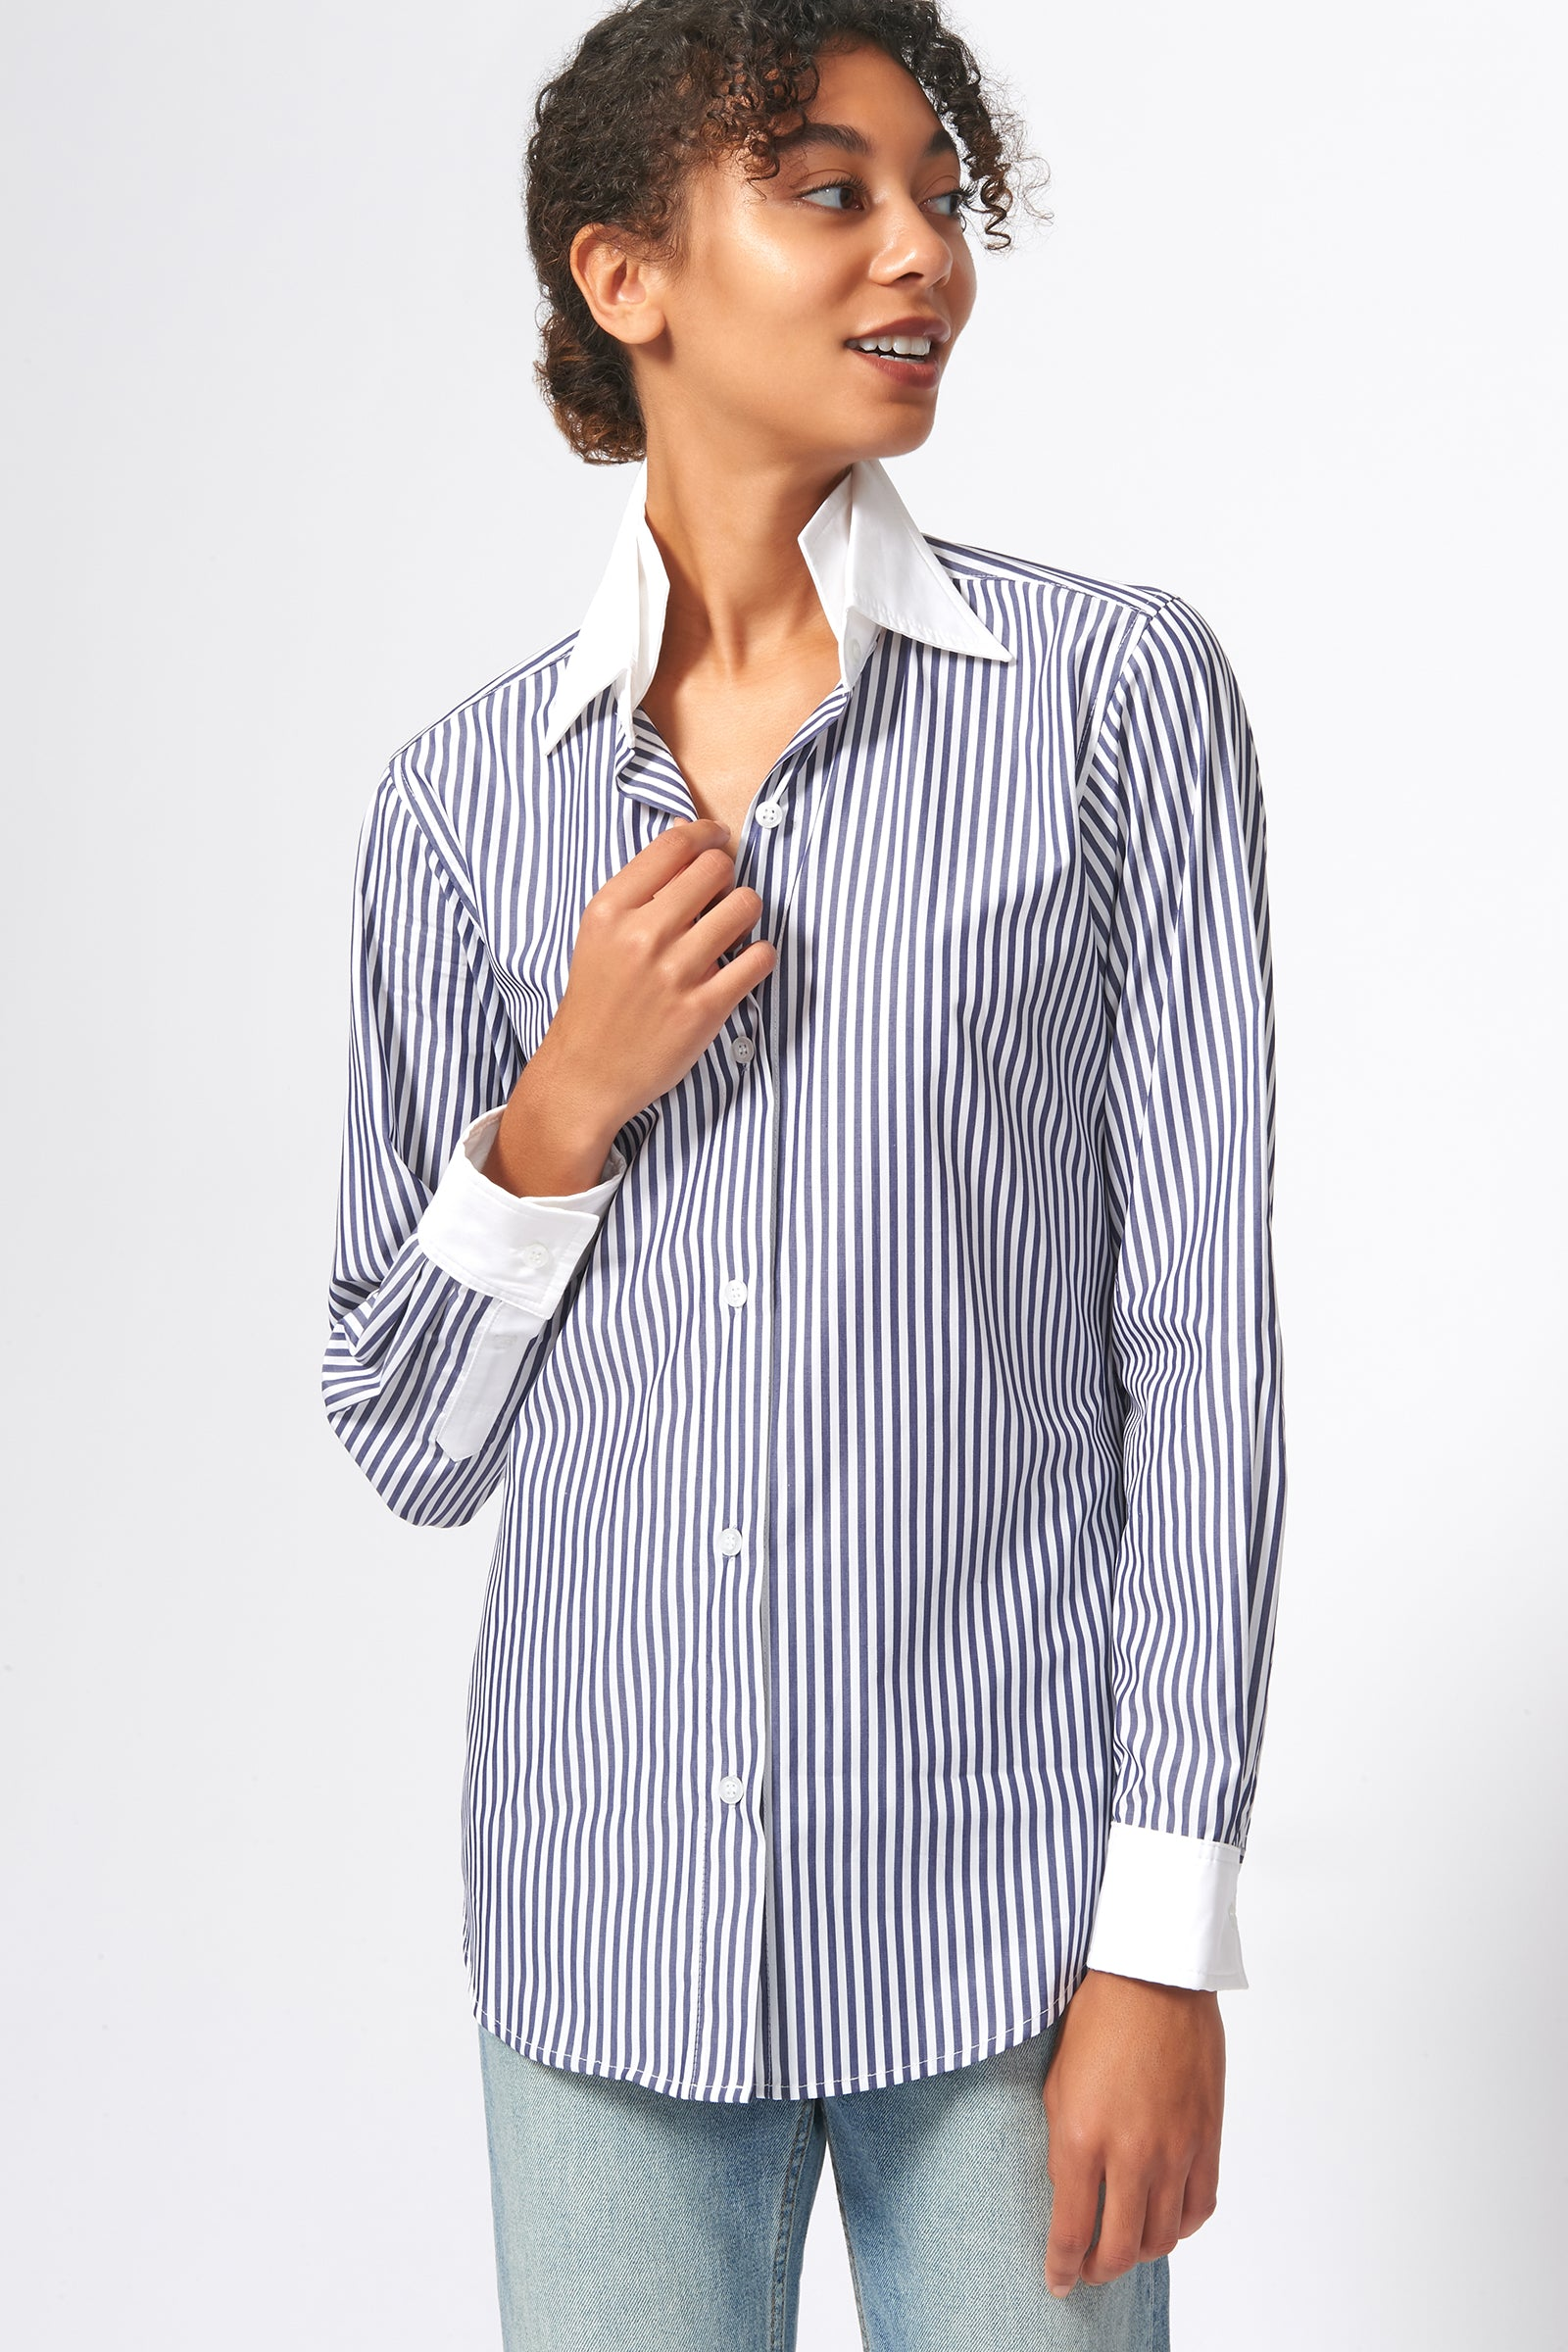 Kal Rieman Double Collar Shirt in Blue and White Stripe Print on Model Front Alternate